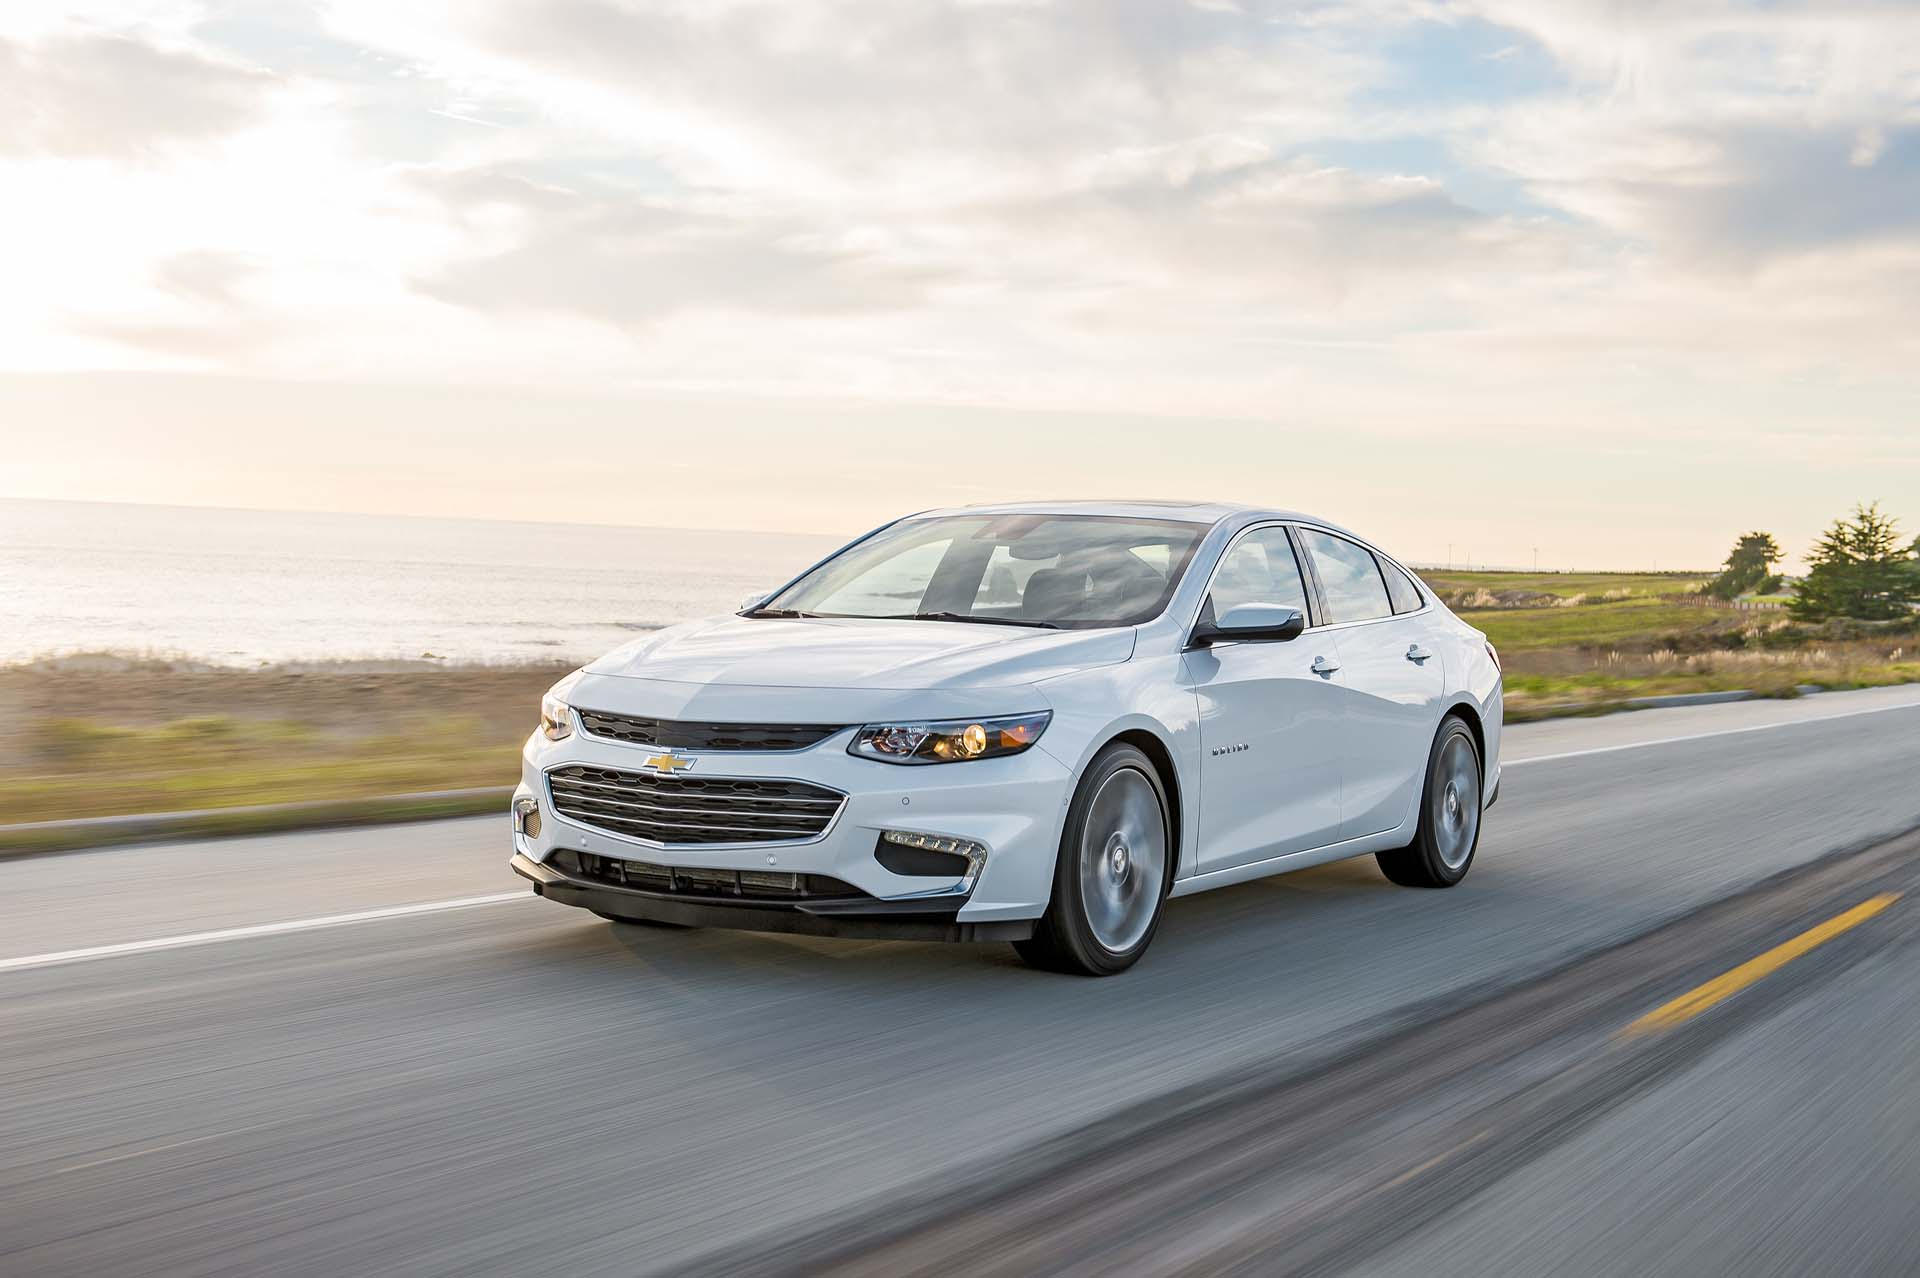 new and used chevrolet malibu chevy prices photos reviews specs the car connection. Black Bedroom Furniture Sets. Home Design Ideas